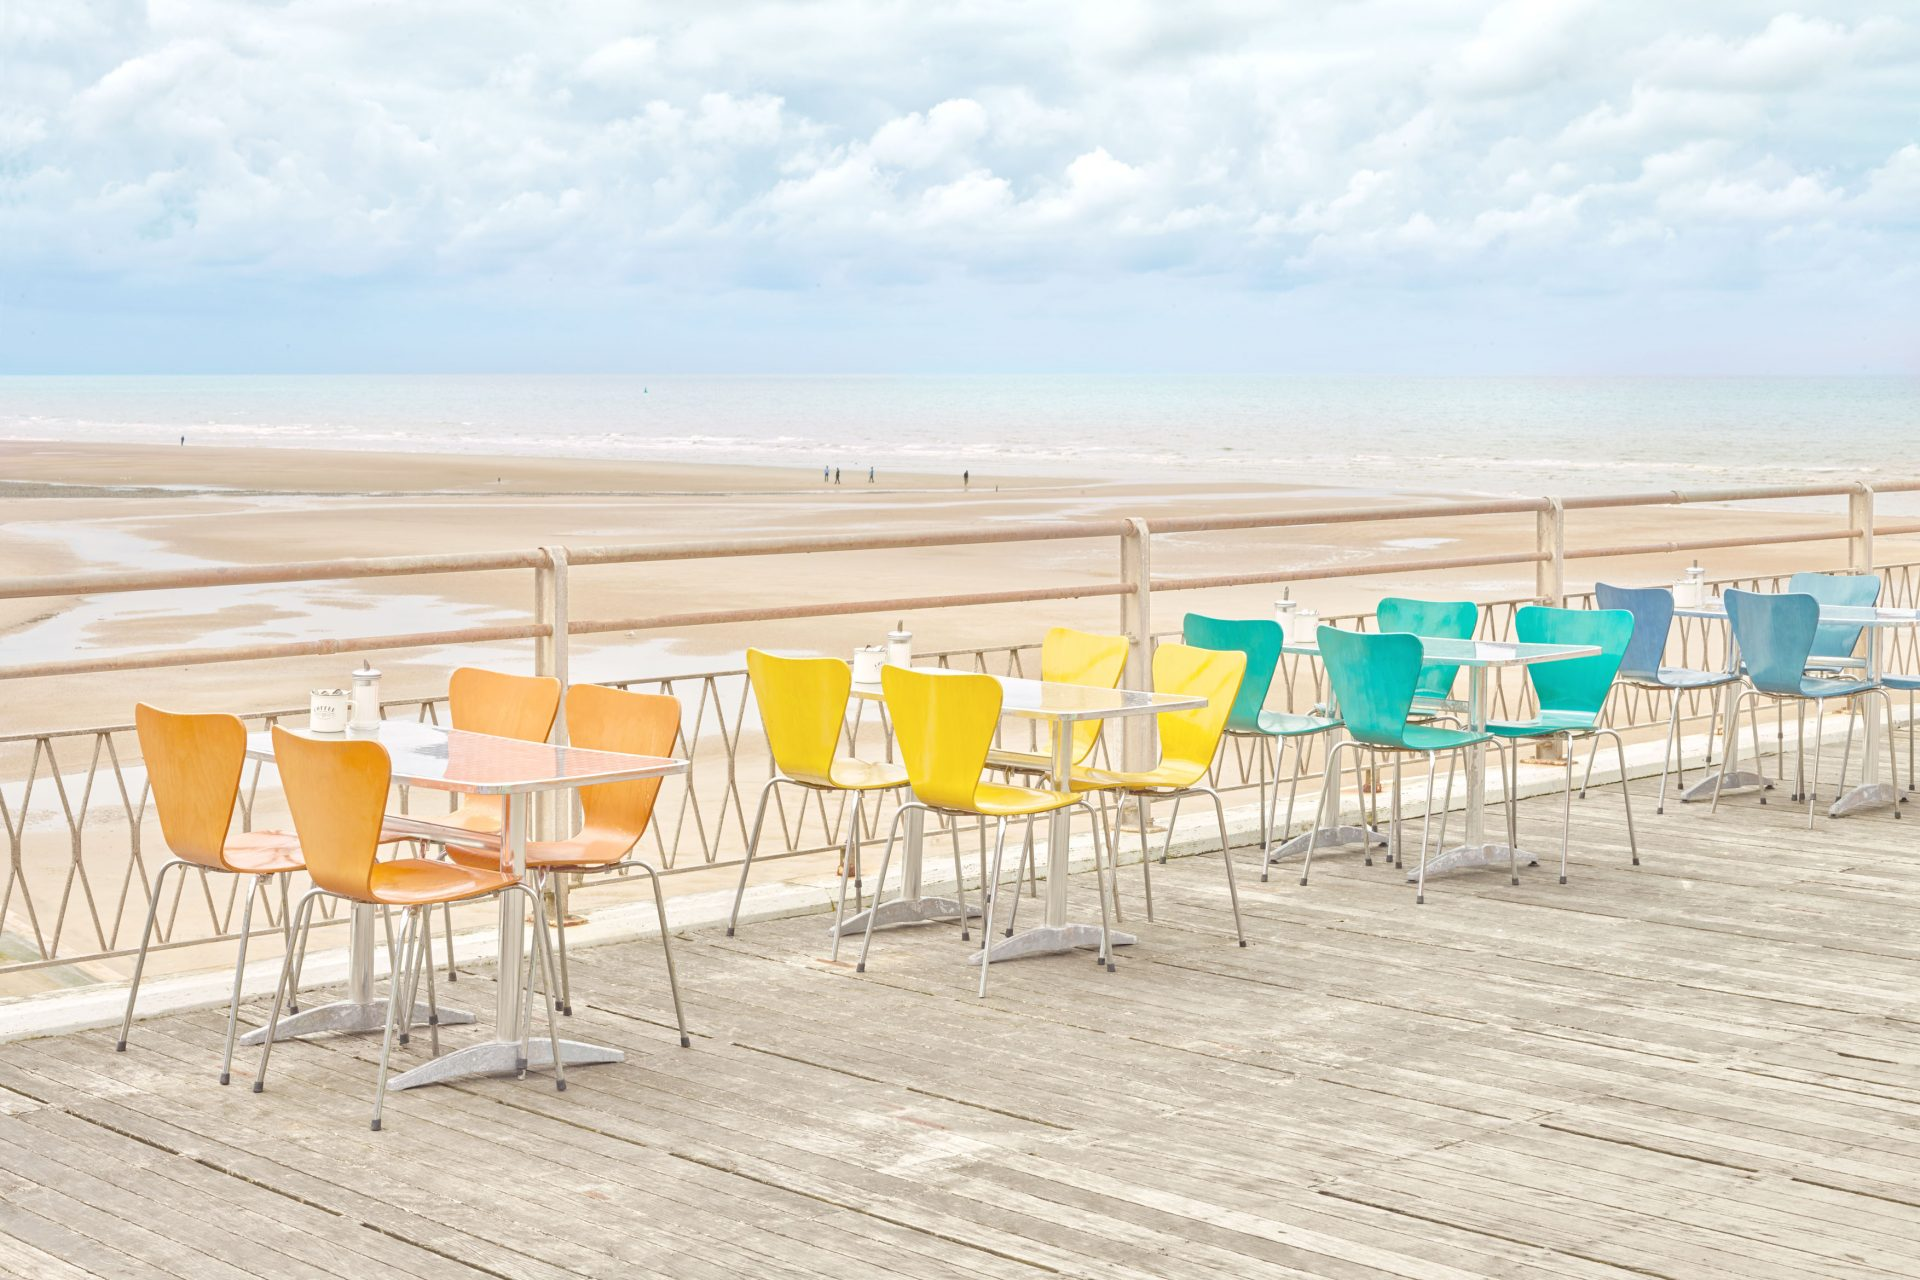 Candy cafe on the pier coloured chairs – Shaw and Shaw Advertising photographers Manchester photographer – Shaw & Shaw Photography